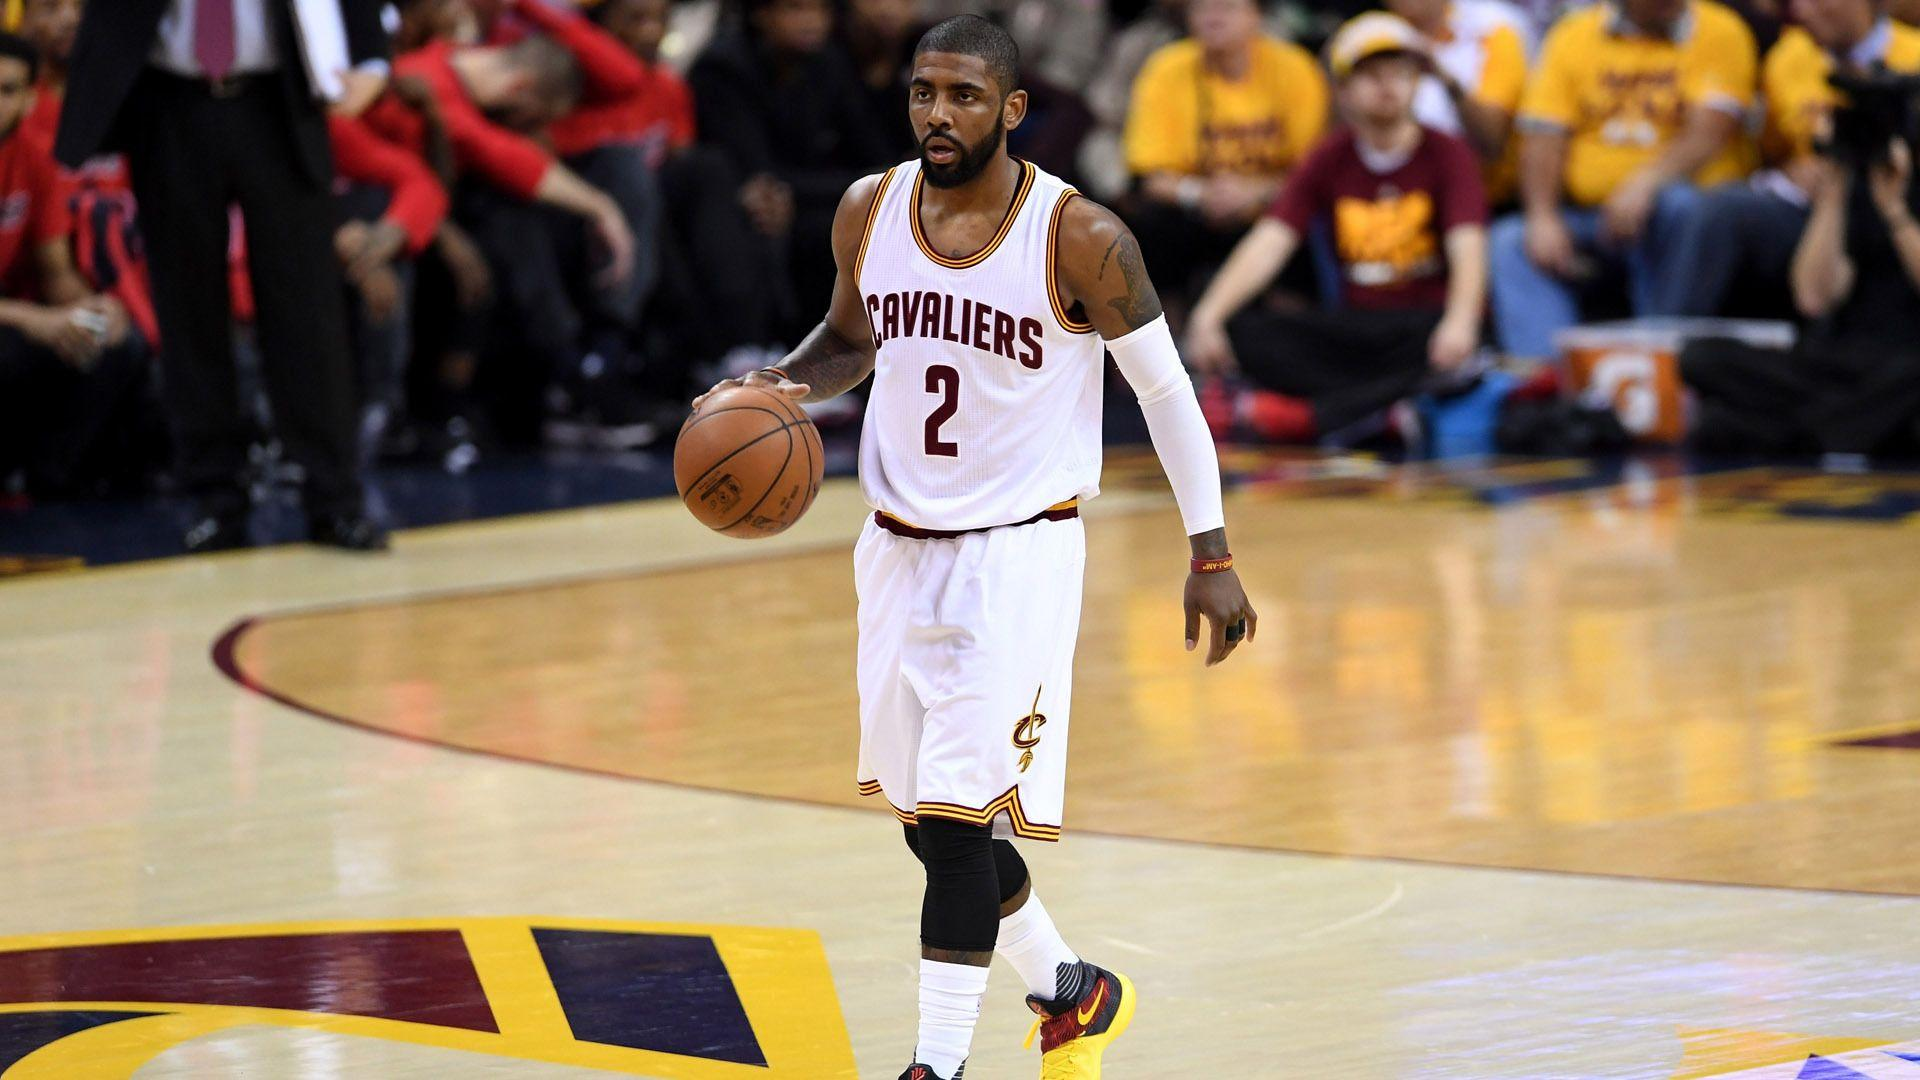 f60eac34acd Wallpaper Blink - Best of Kyrie Irving Wallpapers HD for Android .